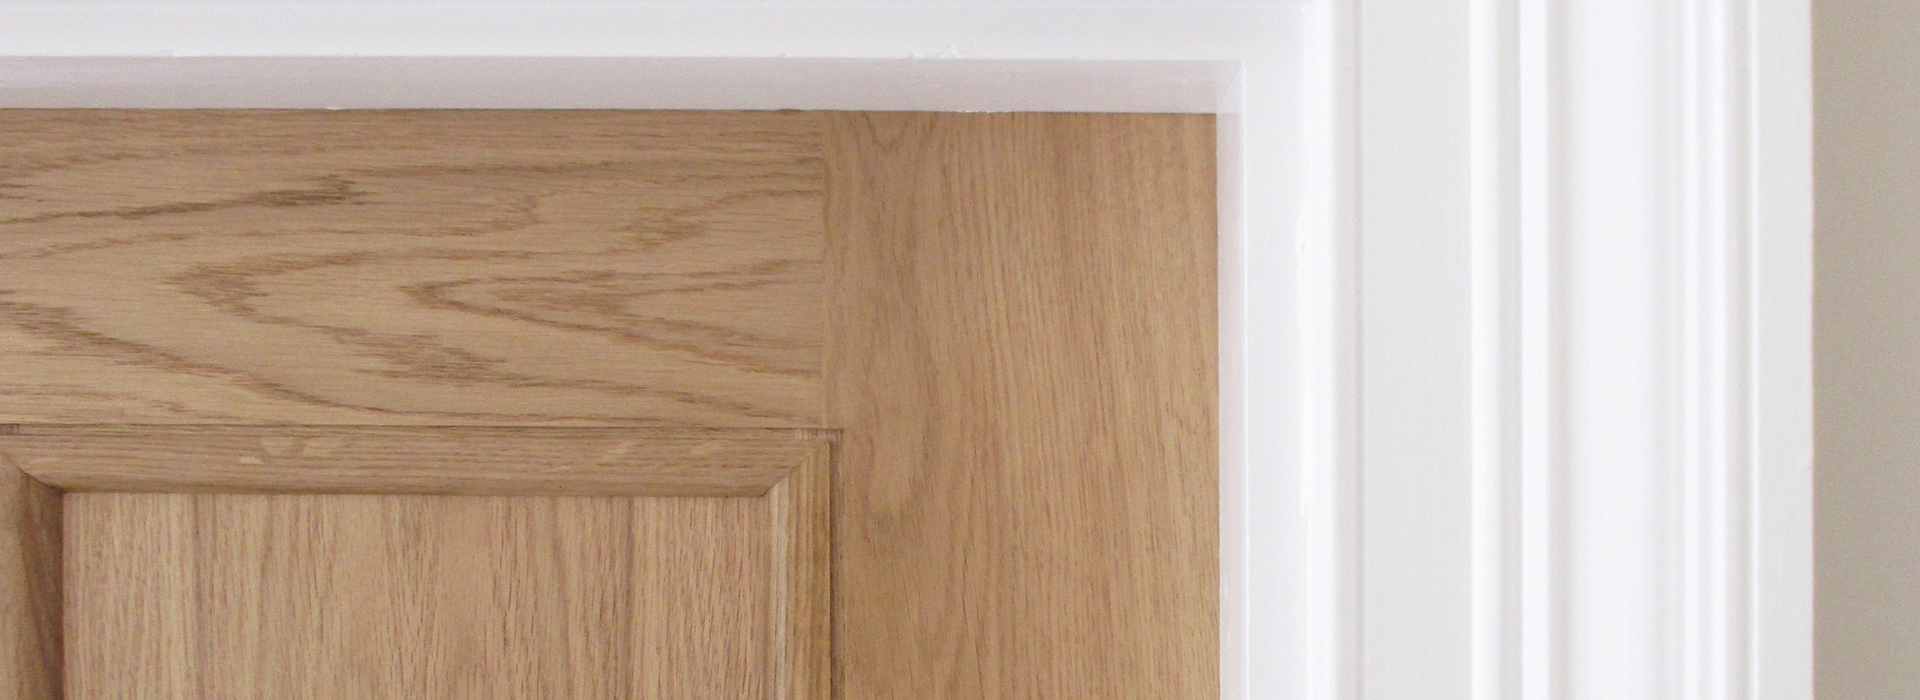 White painted architrave